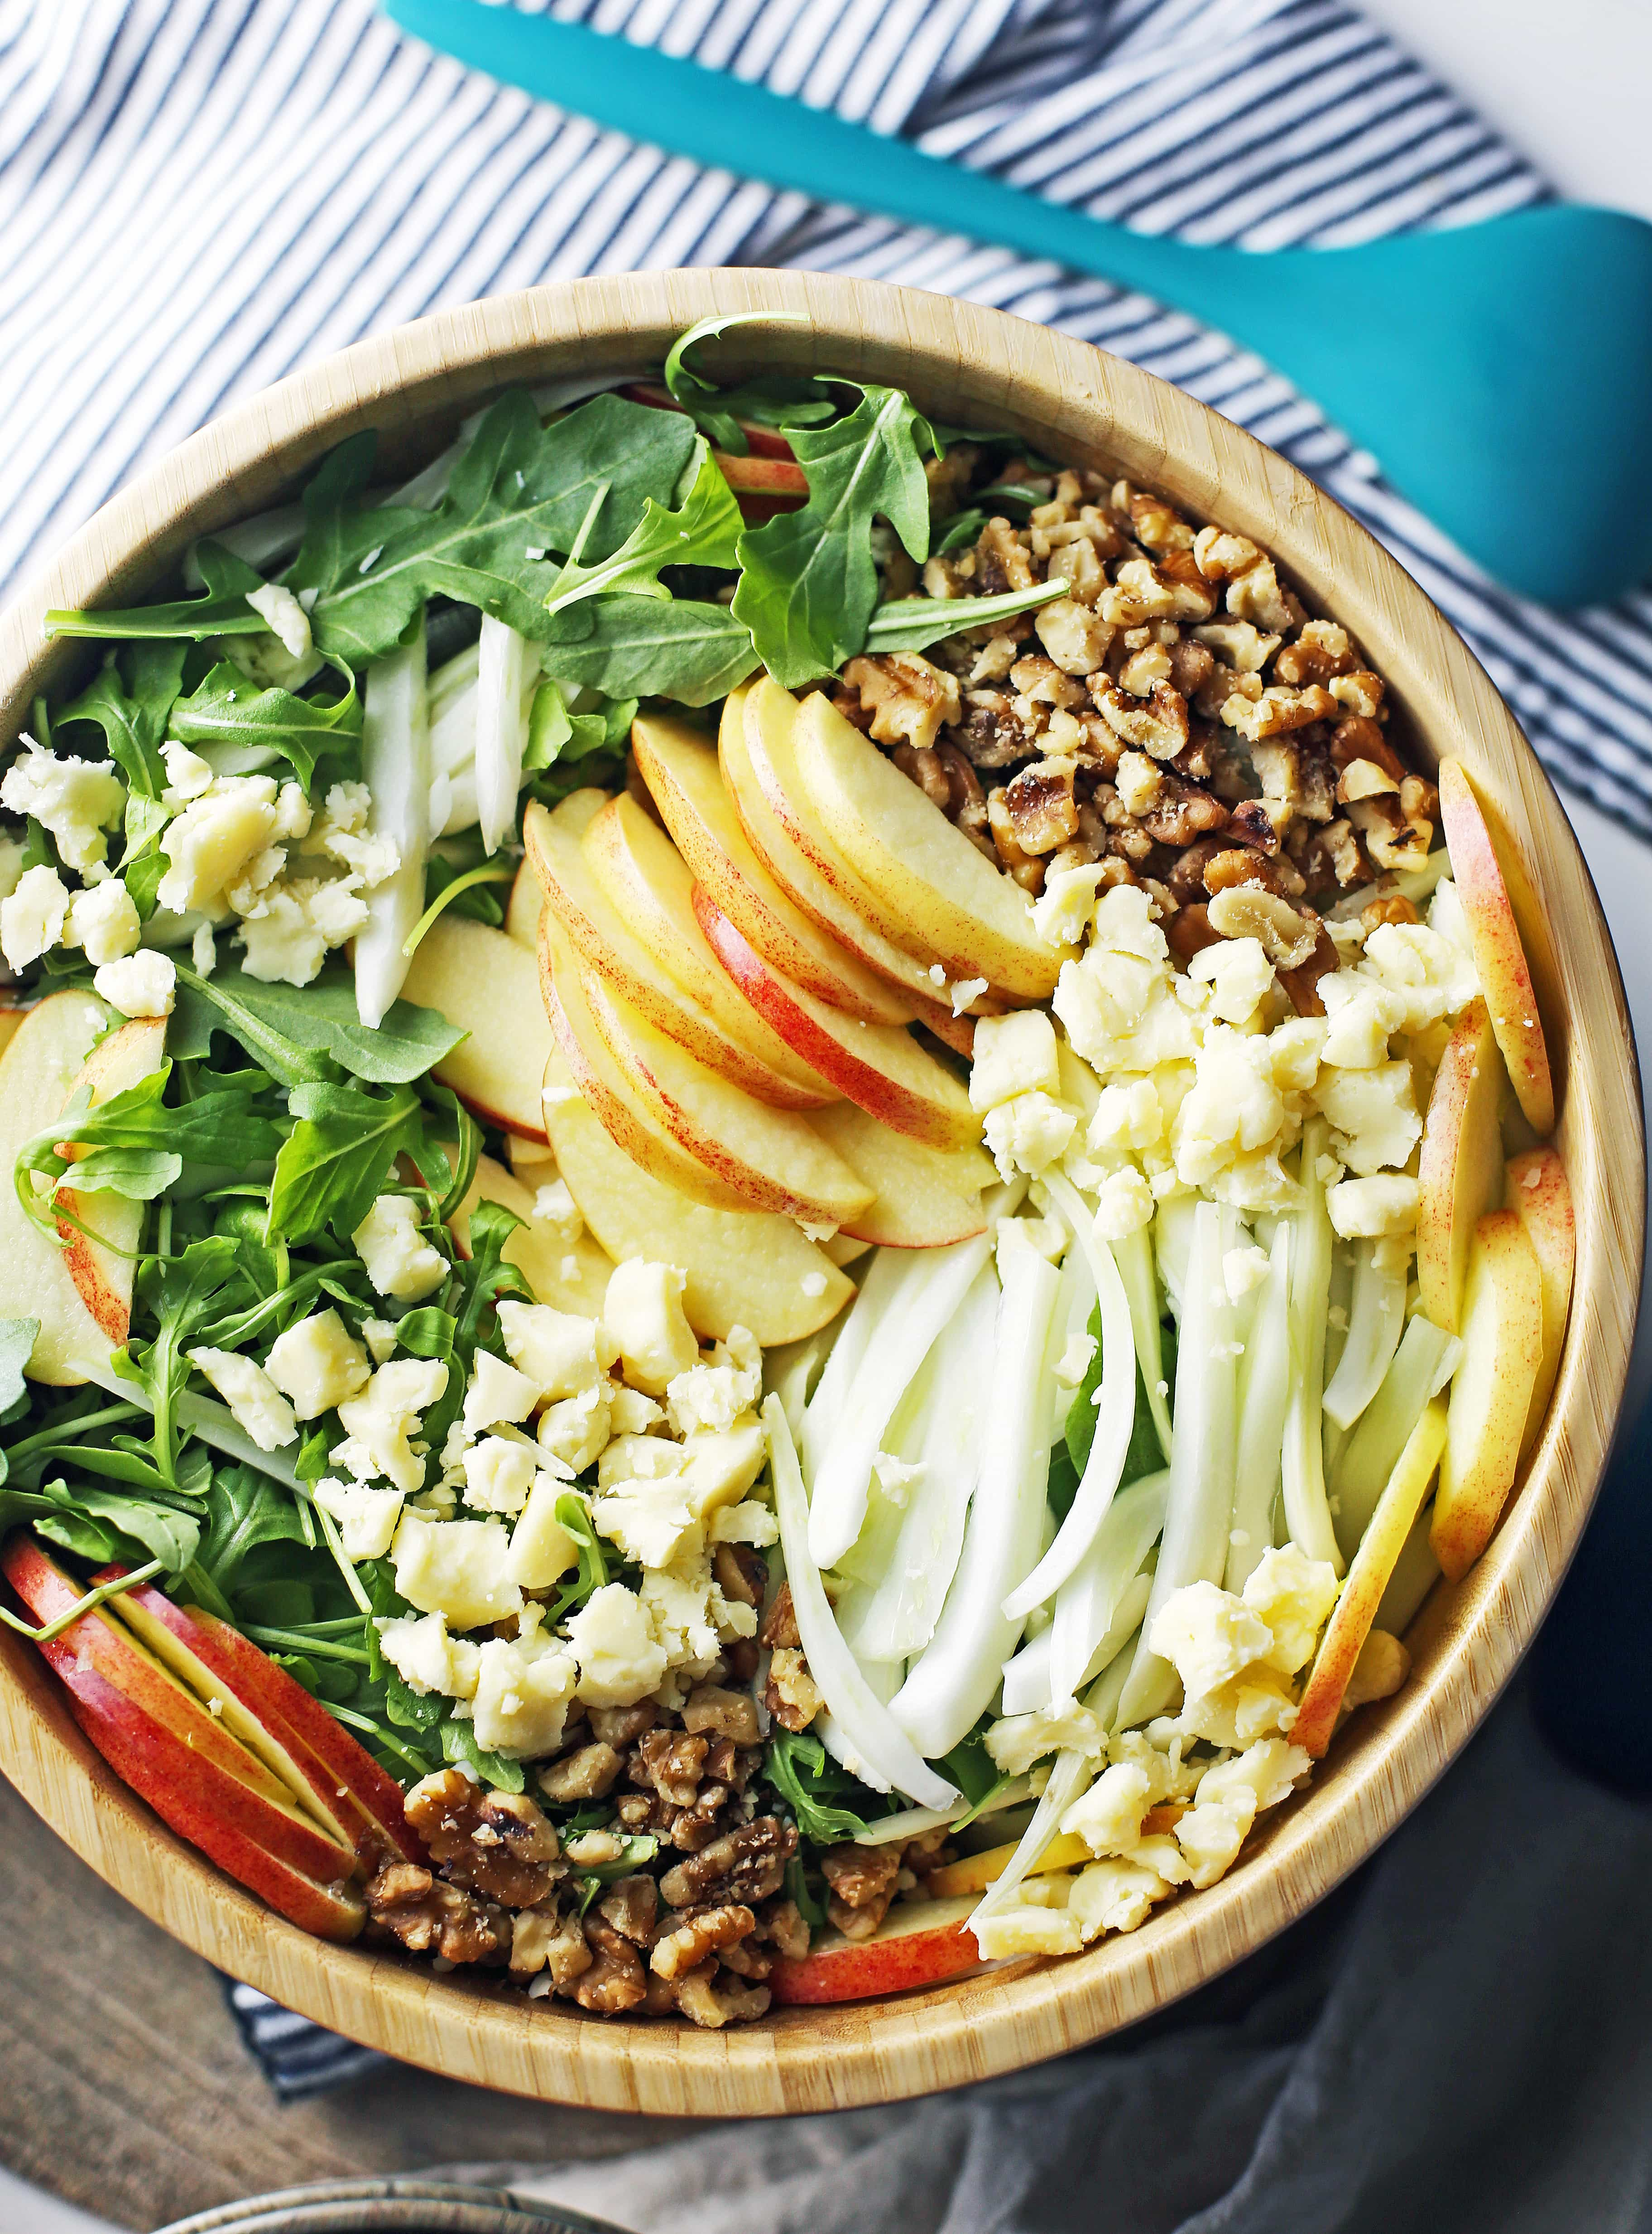 A big wooden bowl containing fennel arugula salad with apples and walnuts.